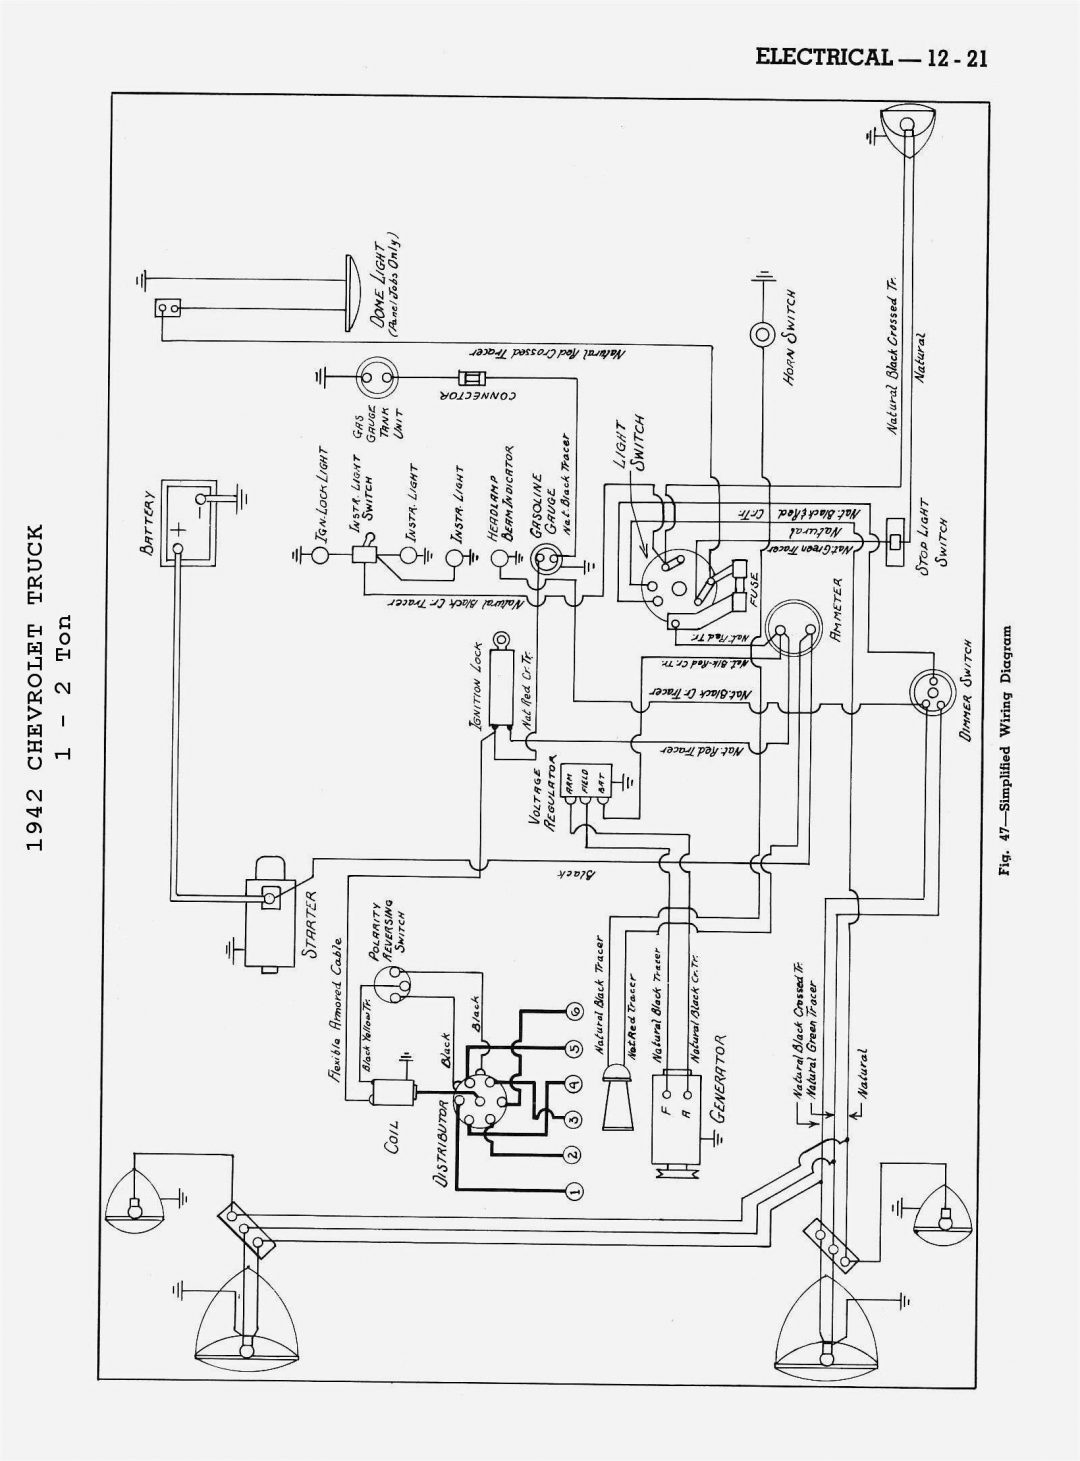 Telecaster Drawing At Free For Personal Use Fender Squier Bullet Wiring Diagram 1080x1461 Stratocaster On Download Wirning Diagrams